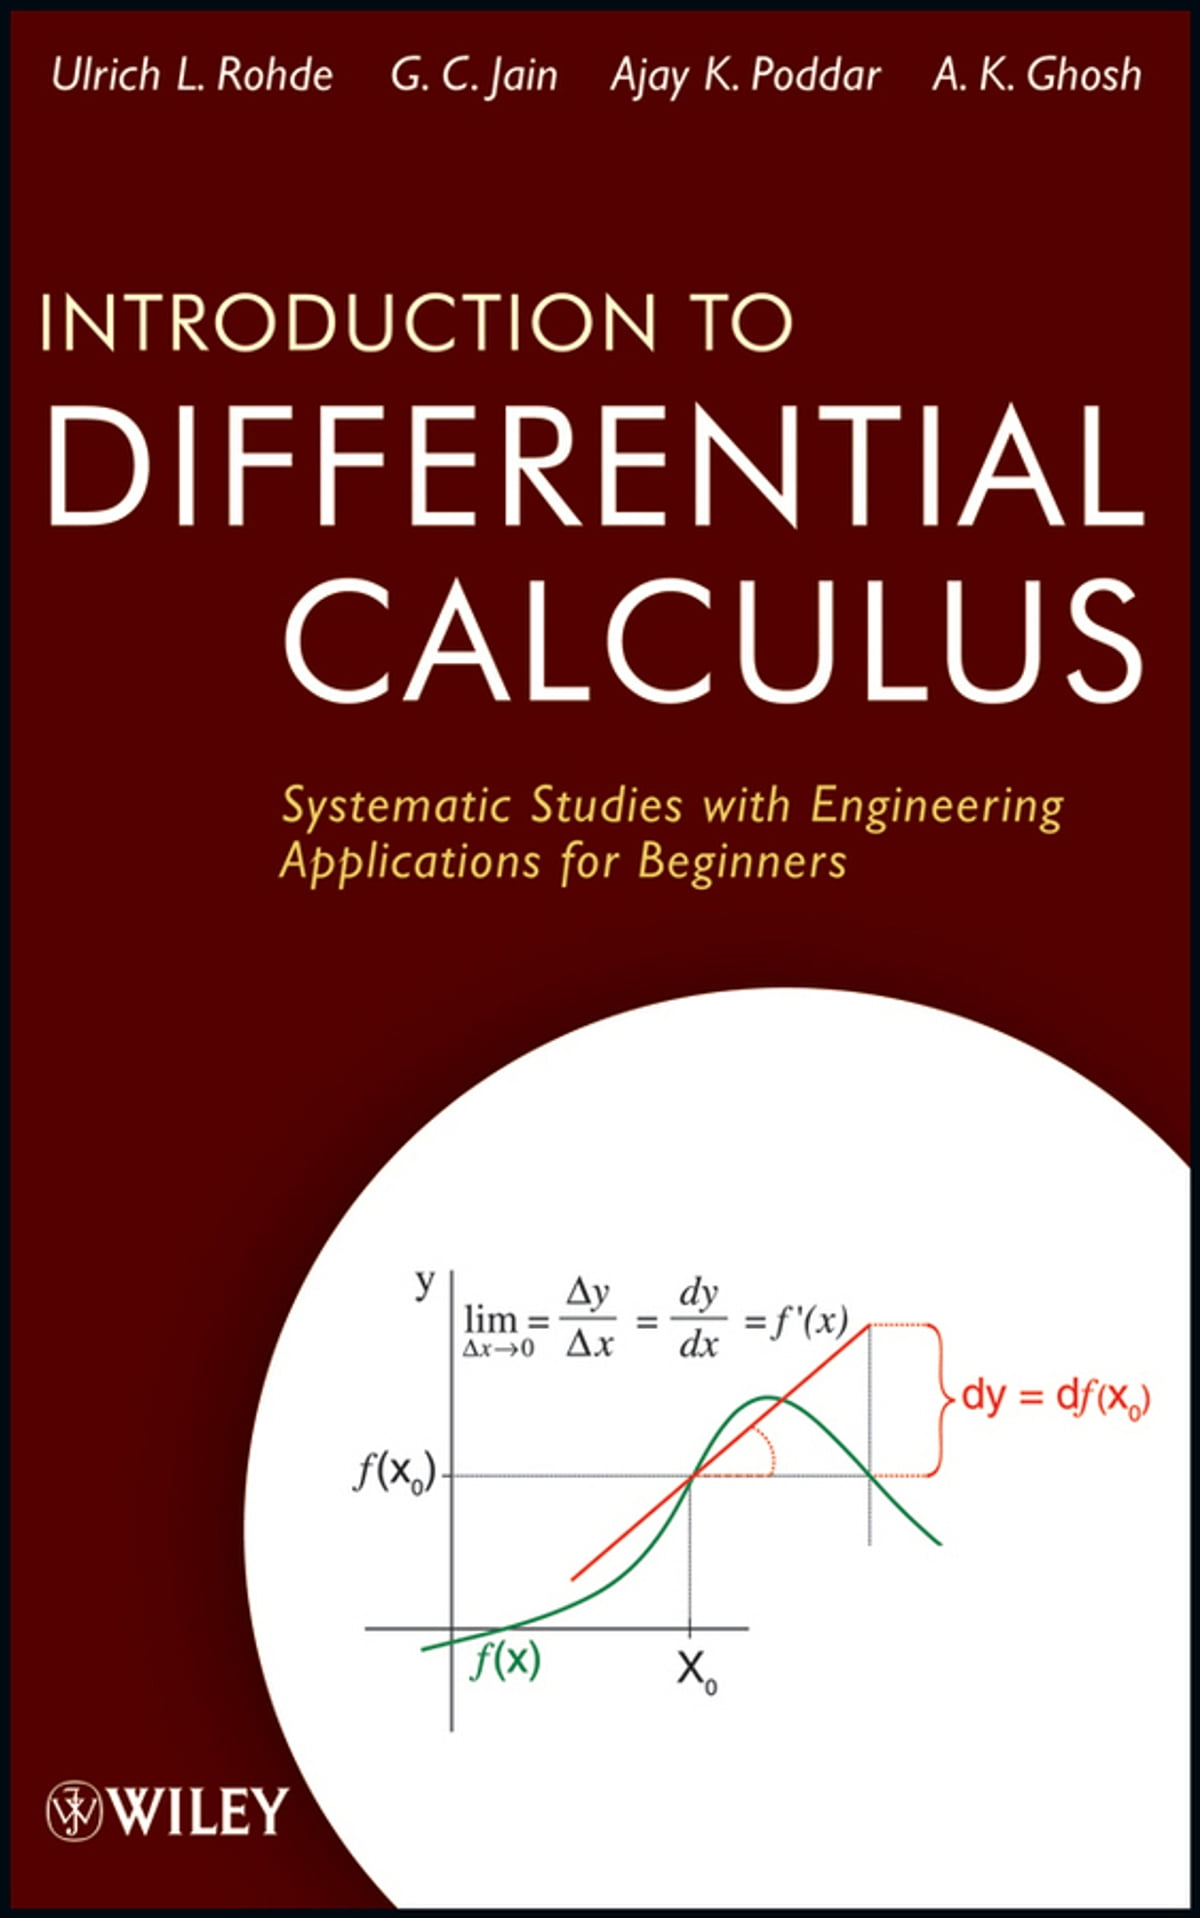 Introduction to Differential Calculus eBook by Ulrich L. Rohde -  9781118130148 | Rakuten Kobo